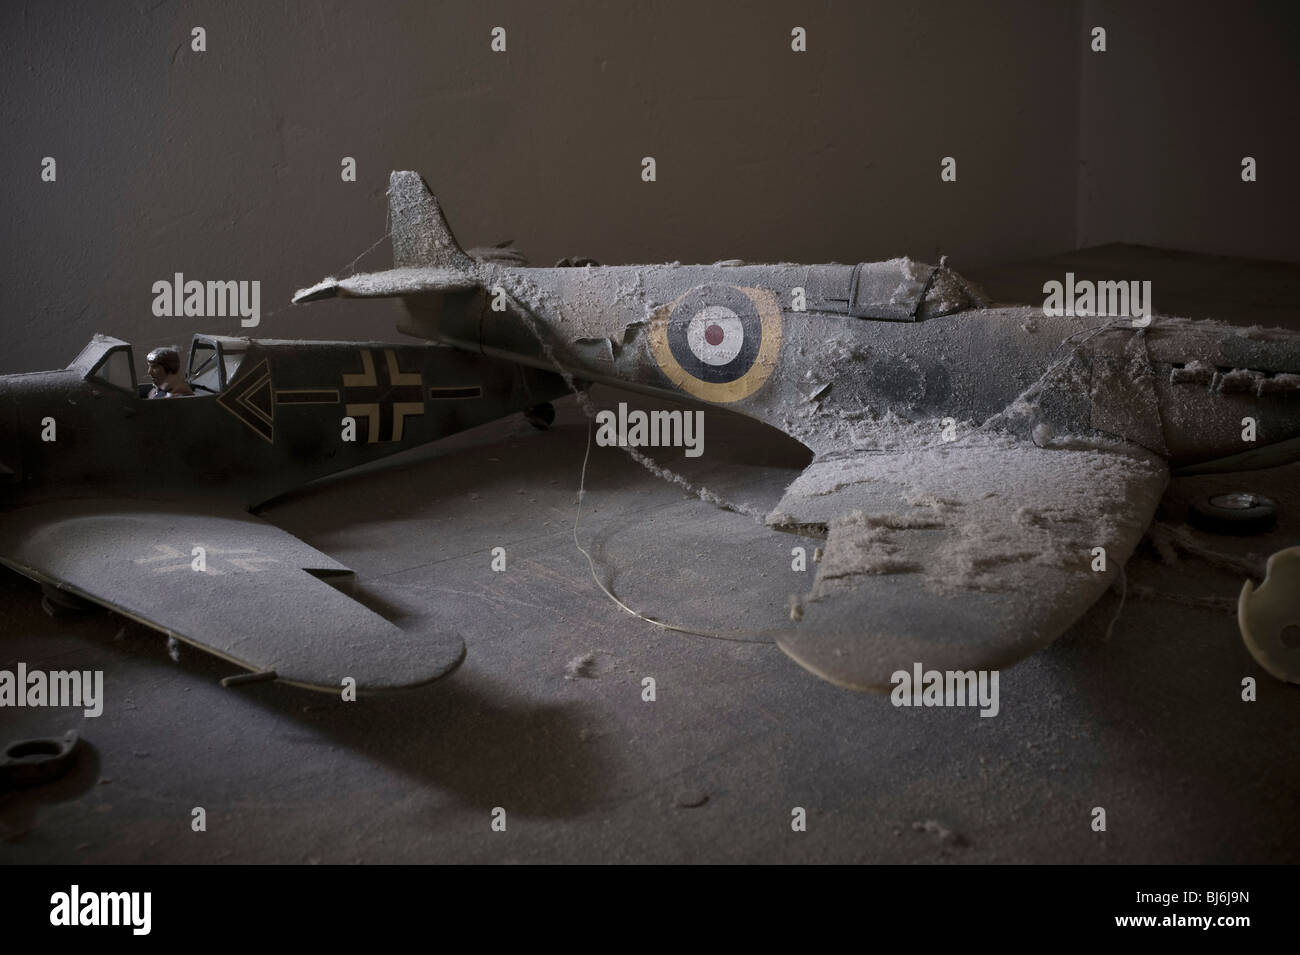 Scale models of a Spitfire and Messerschmidt 109 covered in dust and forgotten - Stock Image